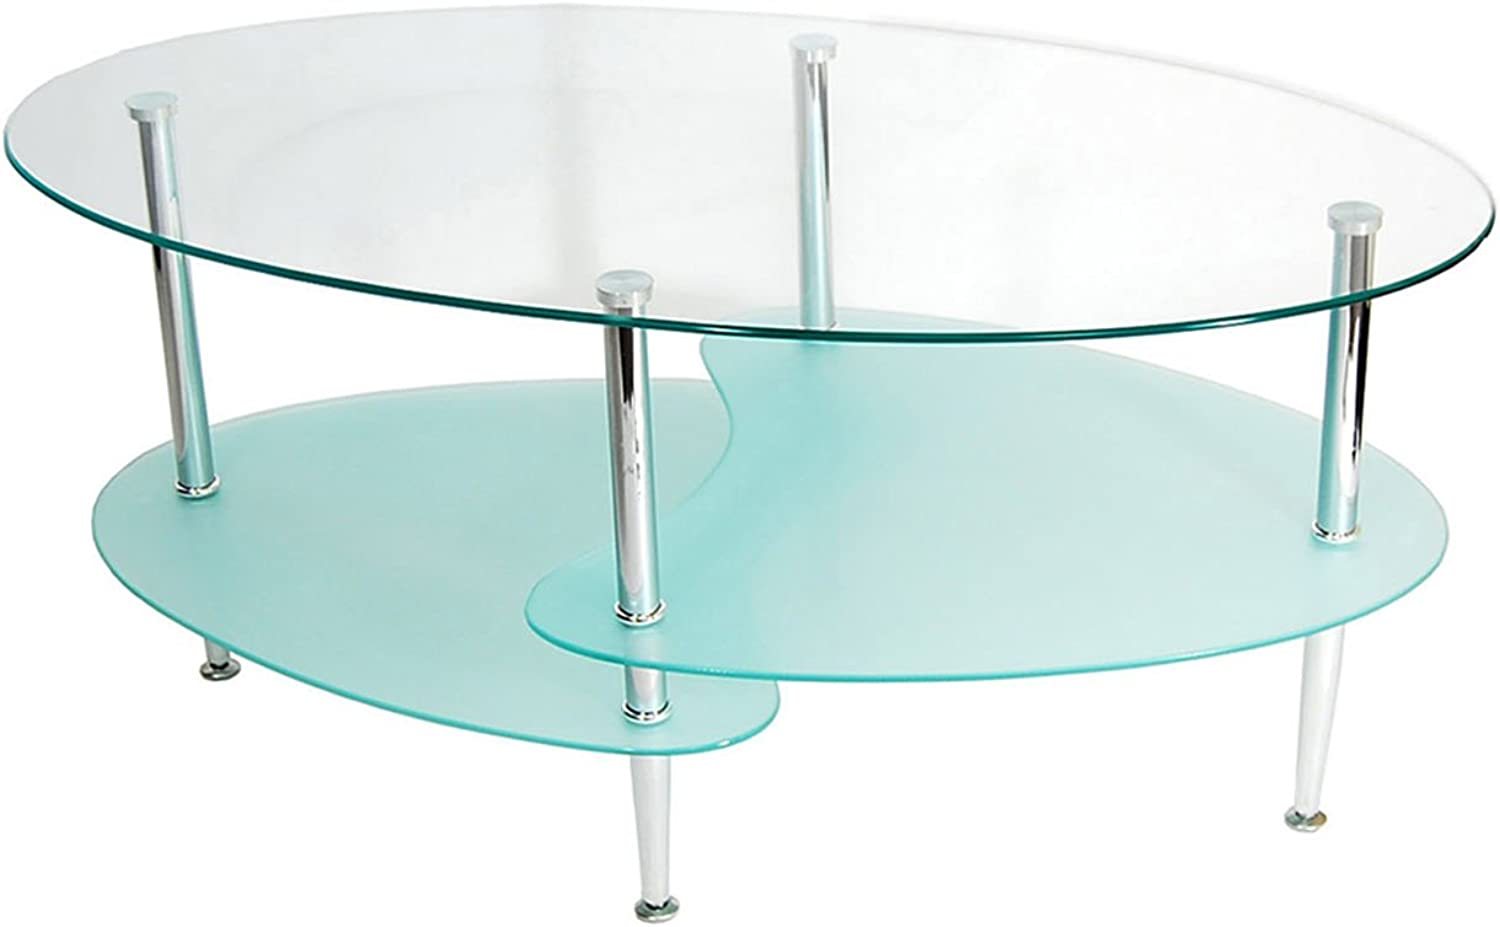 Offex C38B4 Glass Oval Living Room Metal Coffee Table in Frosted Finish - Silver